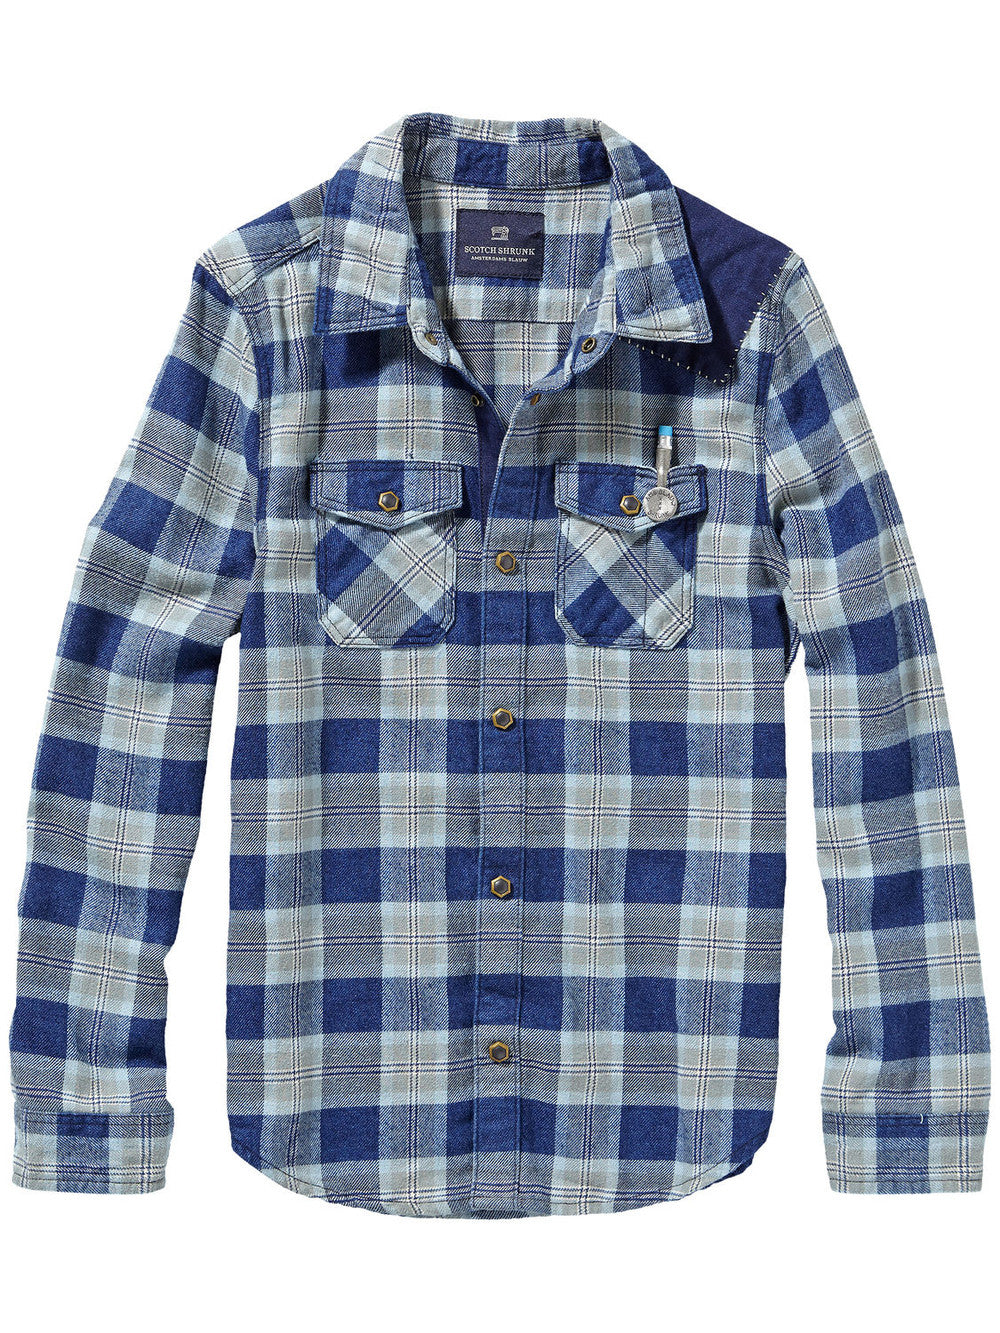 Scotch & Soda Boys Checked Shirt Boys Shirts Scotch Shrunk [Petit_New_York]